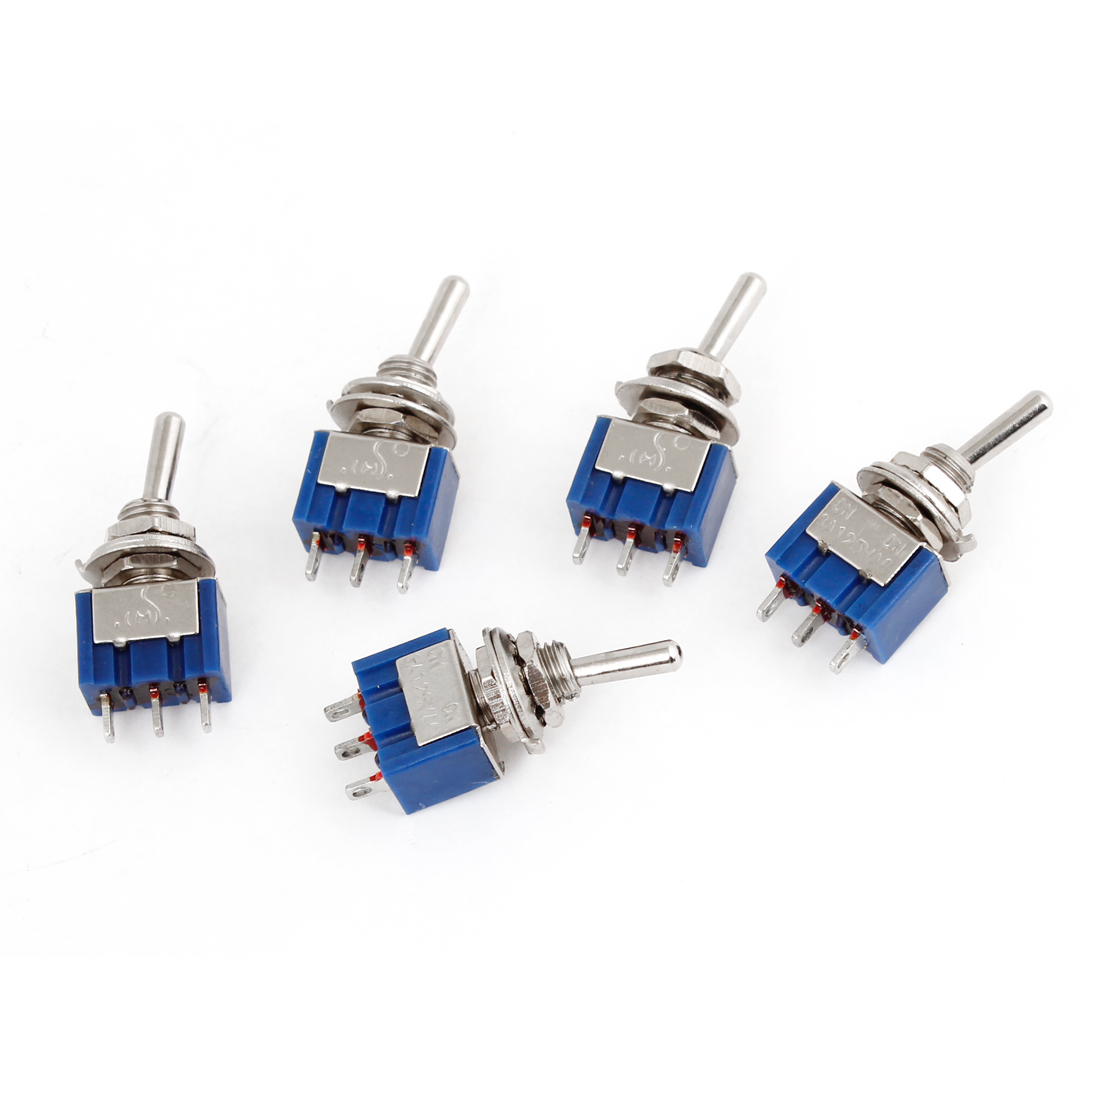 AC 125V 6A SPDT On/On 2 Position 3 Pins Terminals Miniature Toggle Switch 5 Pcs